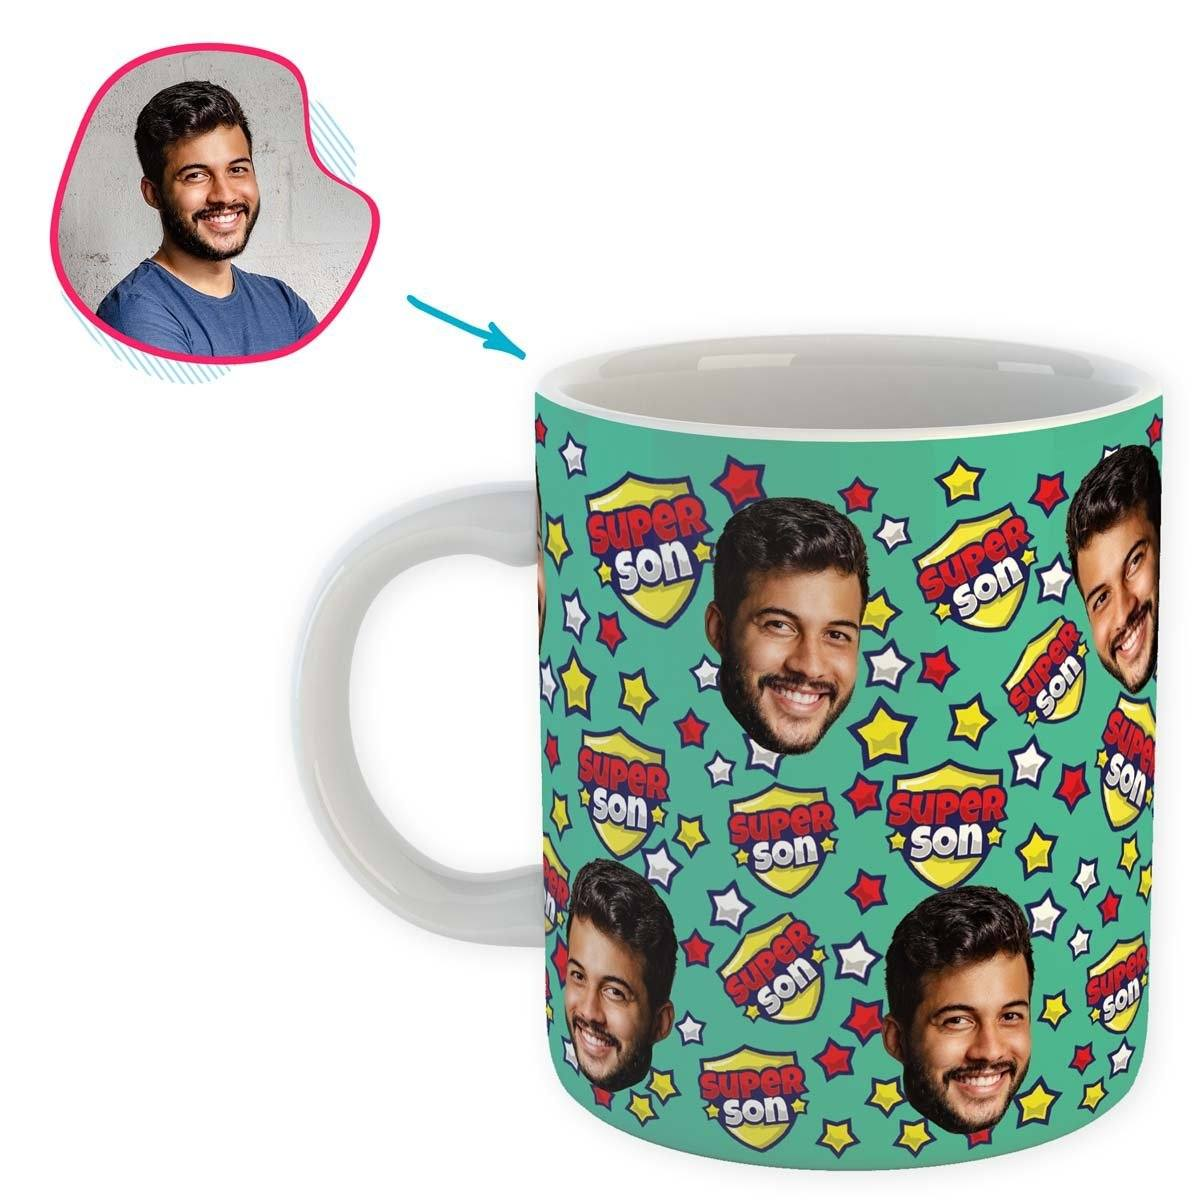 mint Super Son mug personalized with photo of face printed on it